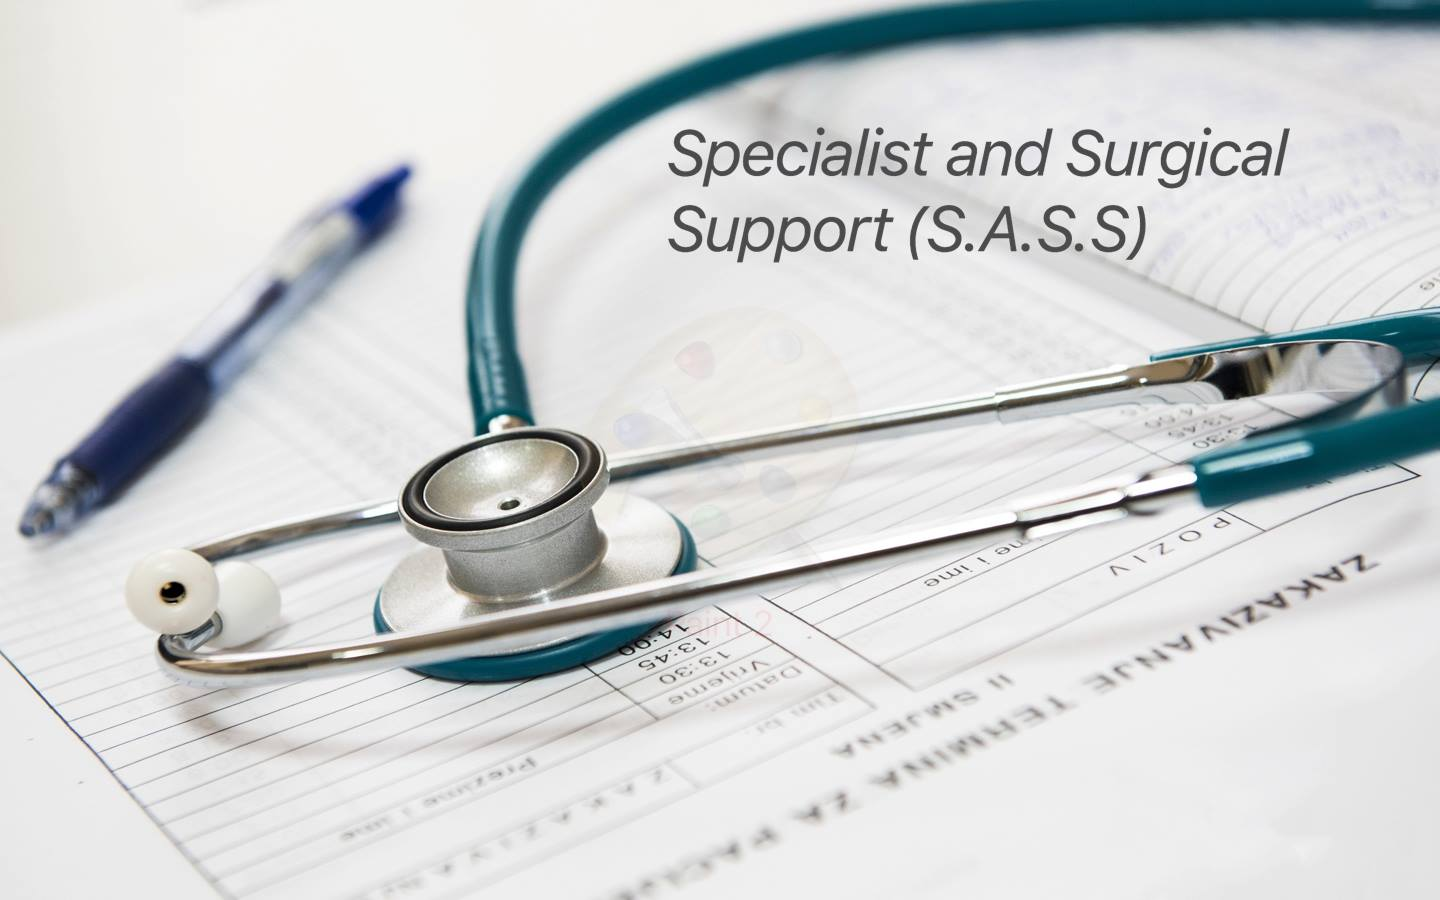 Specialist and Surgical Support